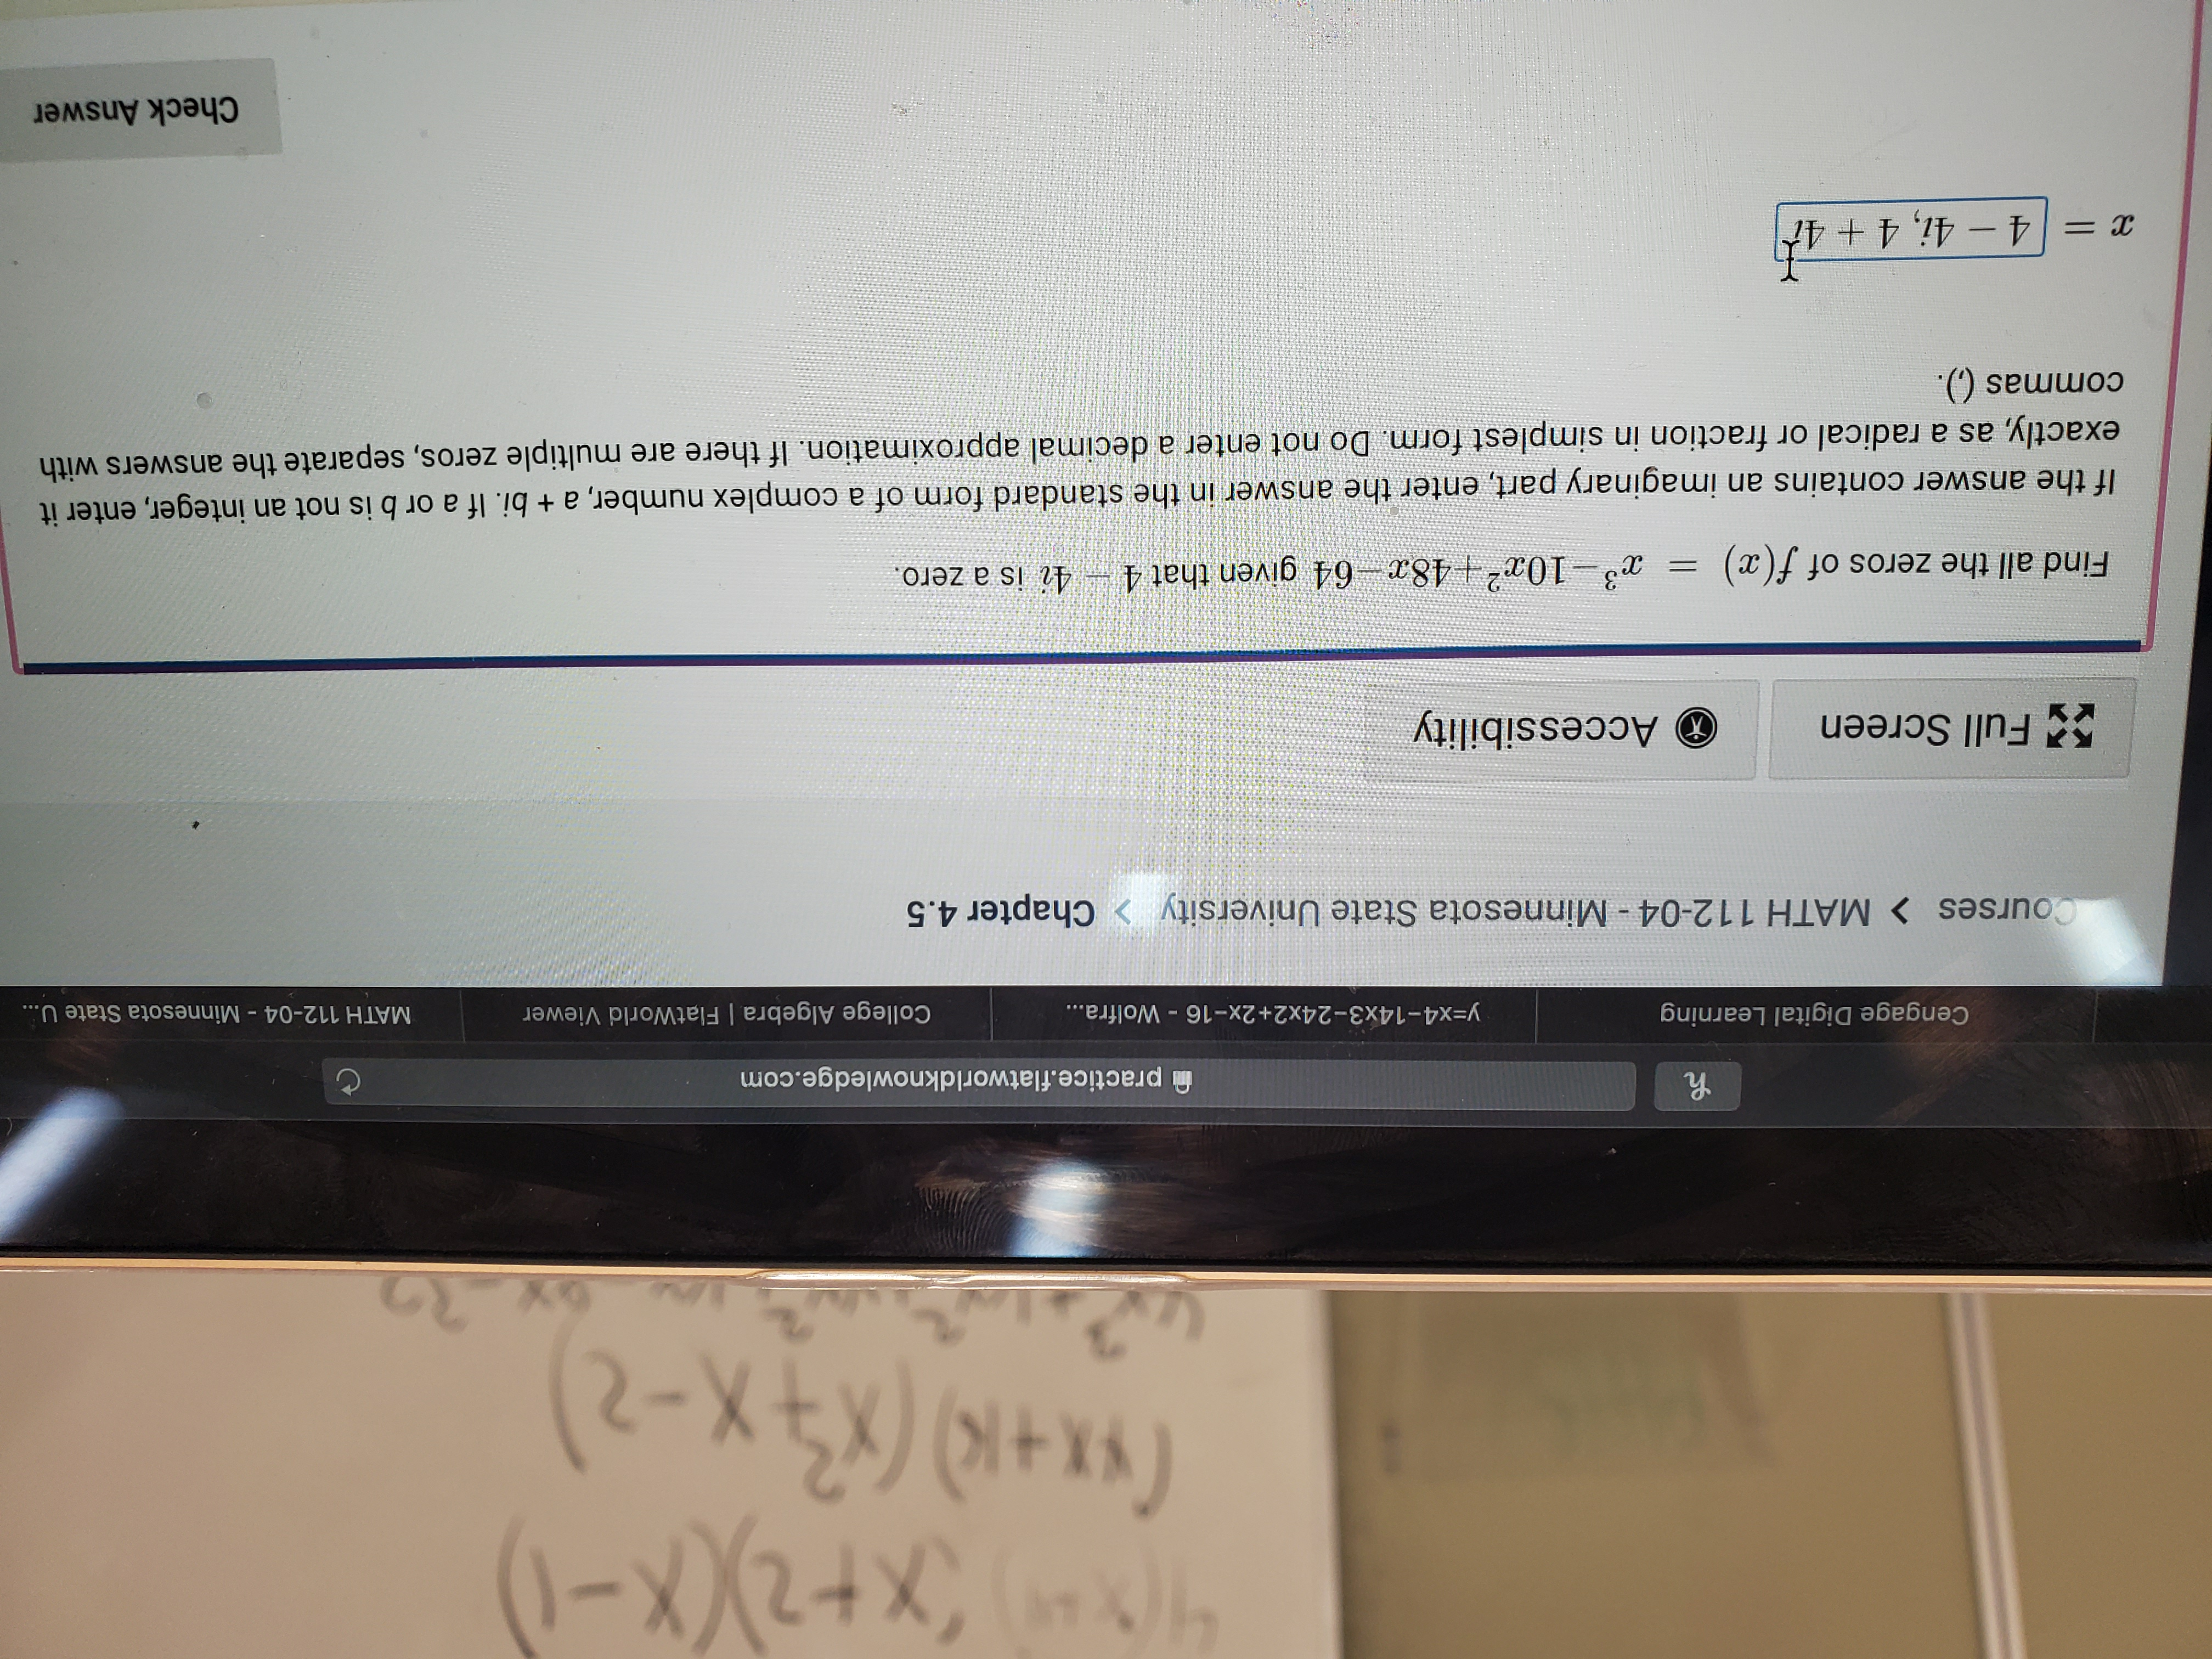 46x+X-) (x+K) (X-2 practice.flatworldknowledge.com Cengage Digital Learning College Algebra | FlatWorld Viewer y=x4-14x3-24x2+2x-16 - Wolfra... MATH 112-04 Minnesota State U... Courses > MATH 112-04 - Minnesota State University Chapter 4.5 Accessibility 5Full Screen 4i is a zero. 3-10a2+48x-64 given that 4 Find all the zeros of f(x) If the answer contains an imaginary part, enter the answer in the standard form of a complex number, a + bi. If a or b is not an integer, enter it exactly, as a radical or fraction in simplest form. Do not enter a decimal approximation. If there are multiple zeros, separate the answers with commas (). x = 4 -4i, 4 +4t Check Answer